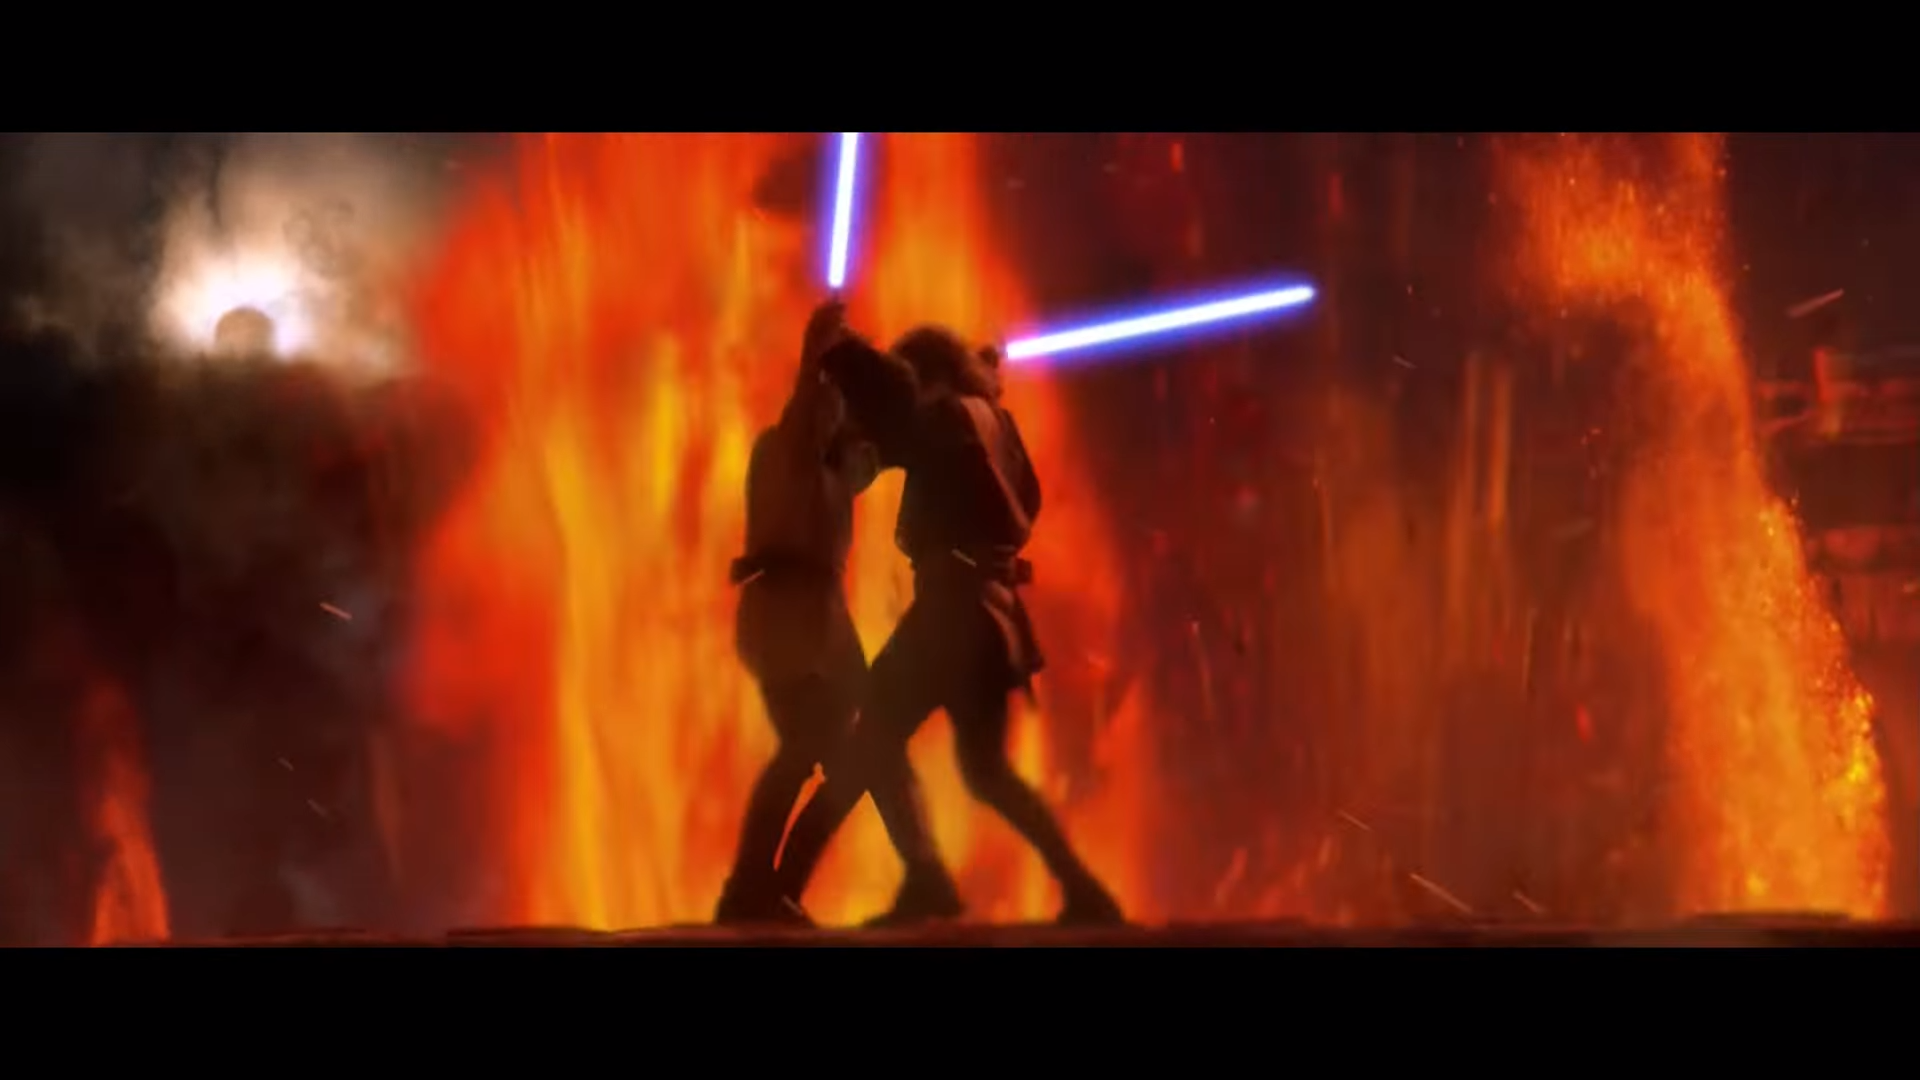 Star Wars Contest 2015 Master Vs Apprentice Episode Iii Revenge Of The Sith Animated Star Wars Contest 2015 Sketchfab Forum